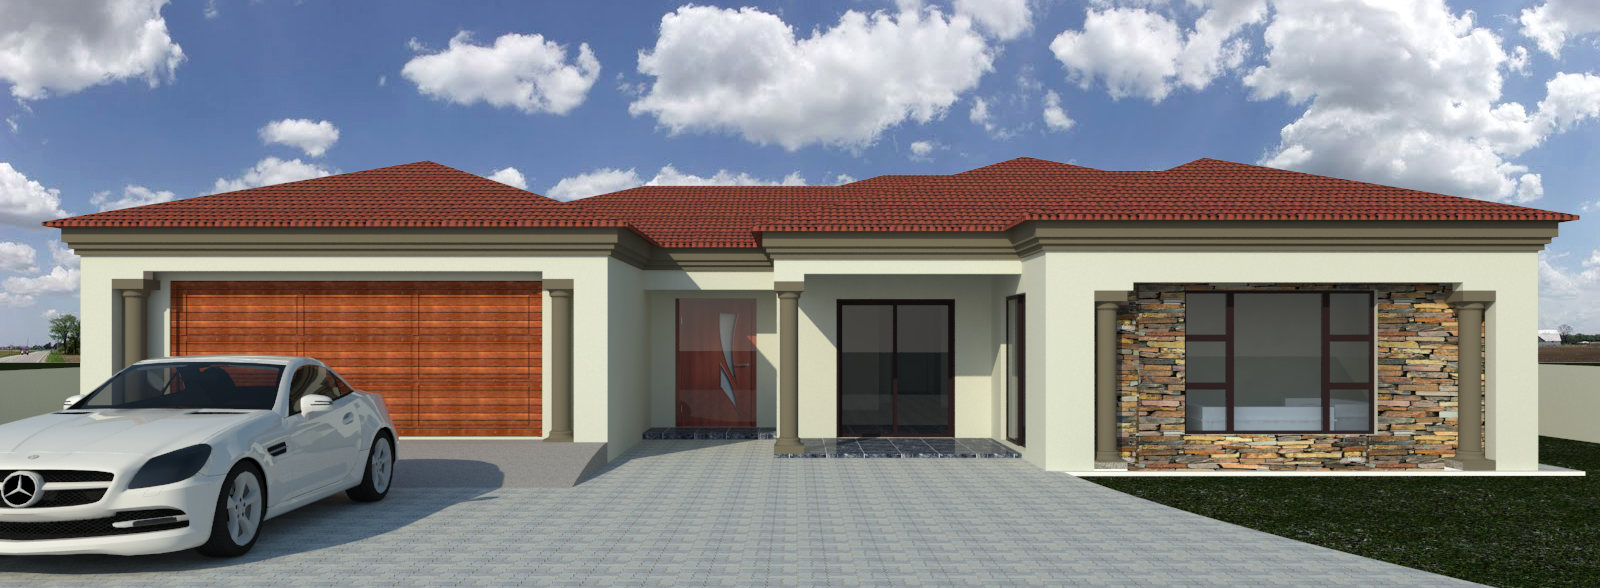 My House Plans South Africa My House Plans Most Affordable Way To Build Your Home House